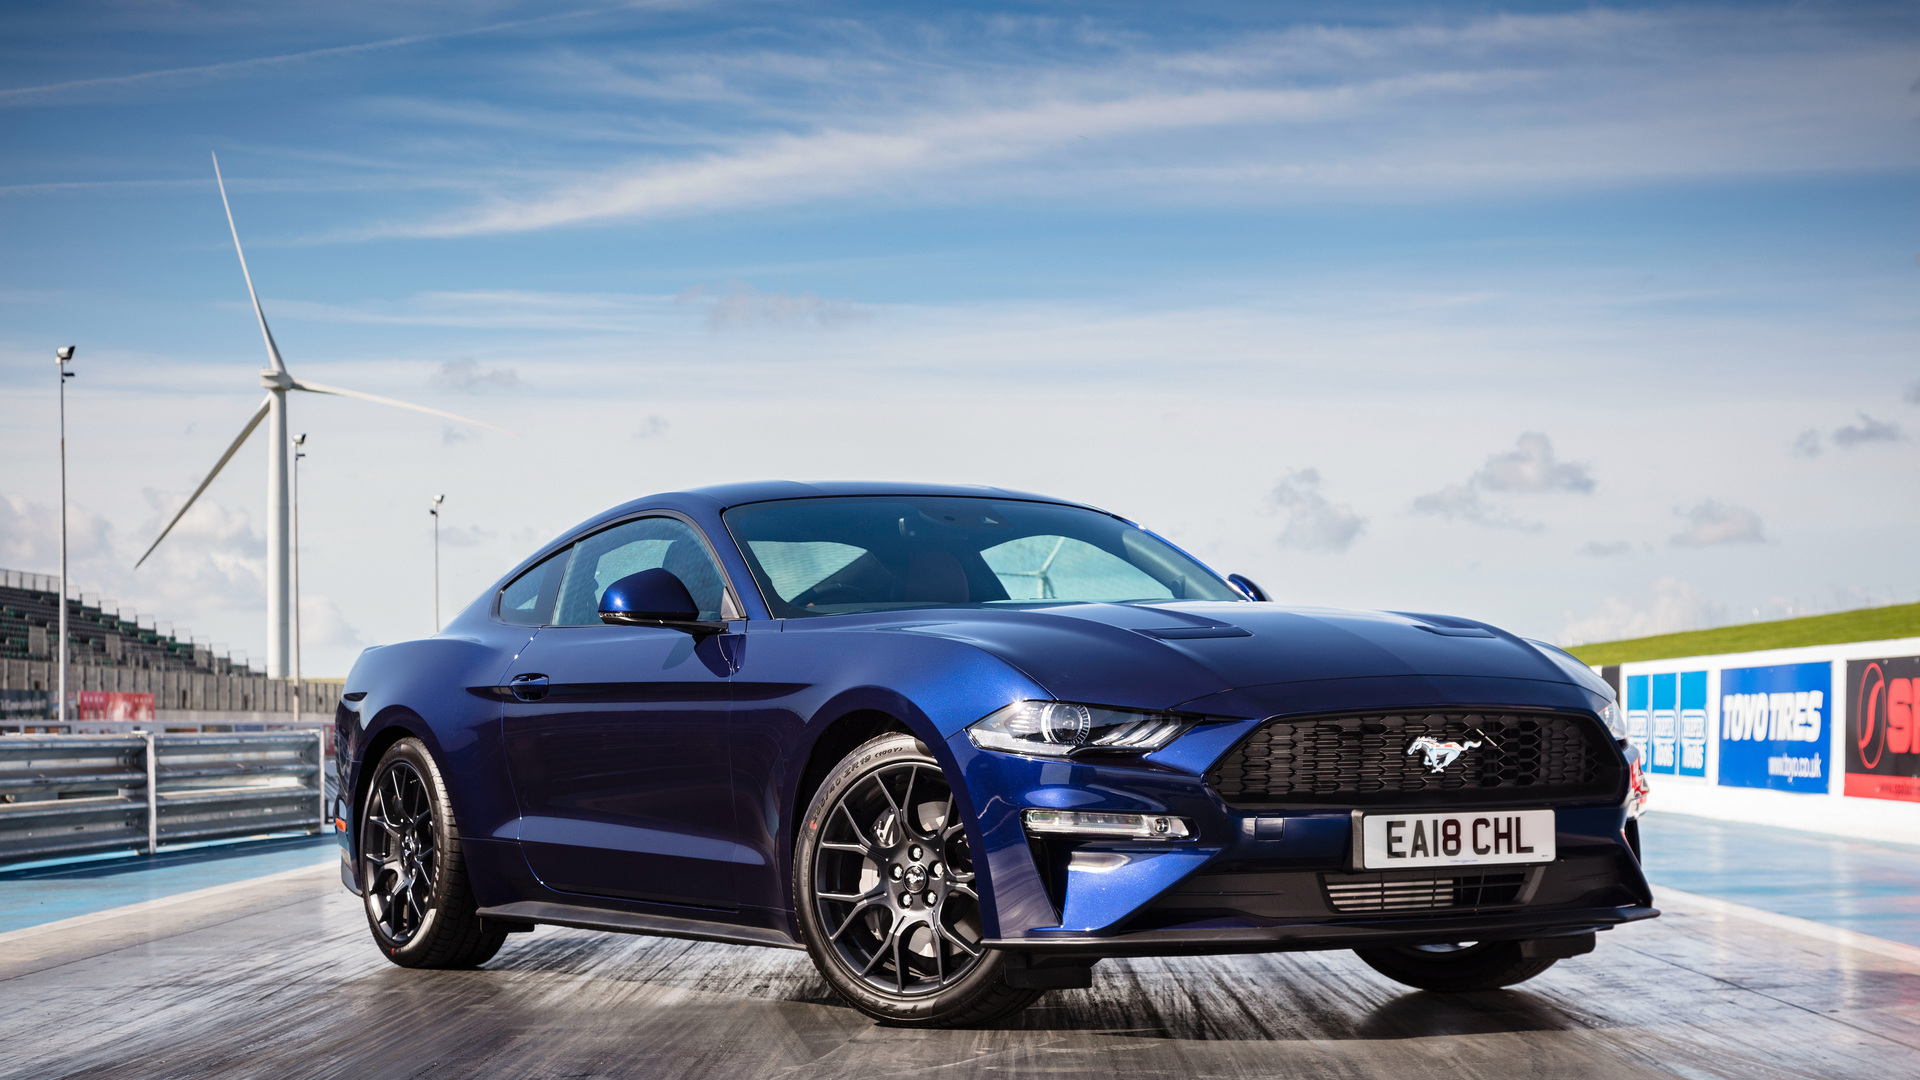 1920x1080 Ford Mustang EcoBoost Fastback 2018 Laptop Full ...